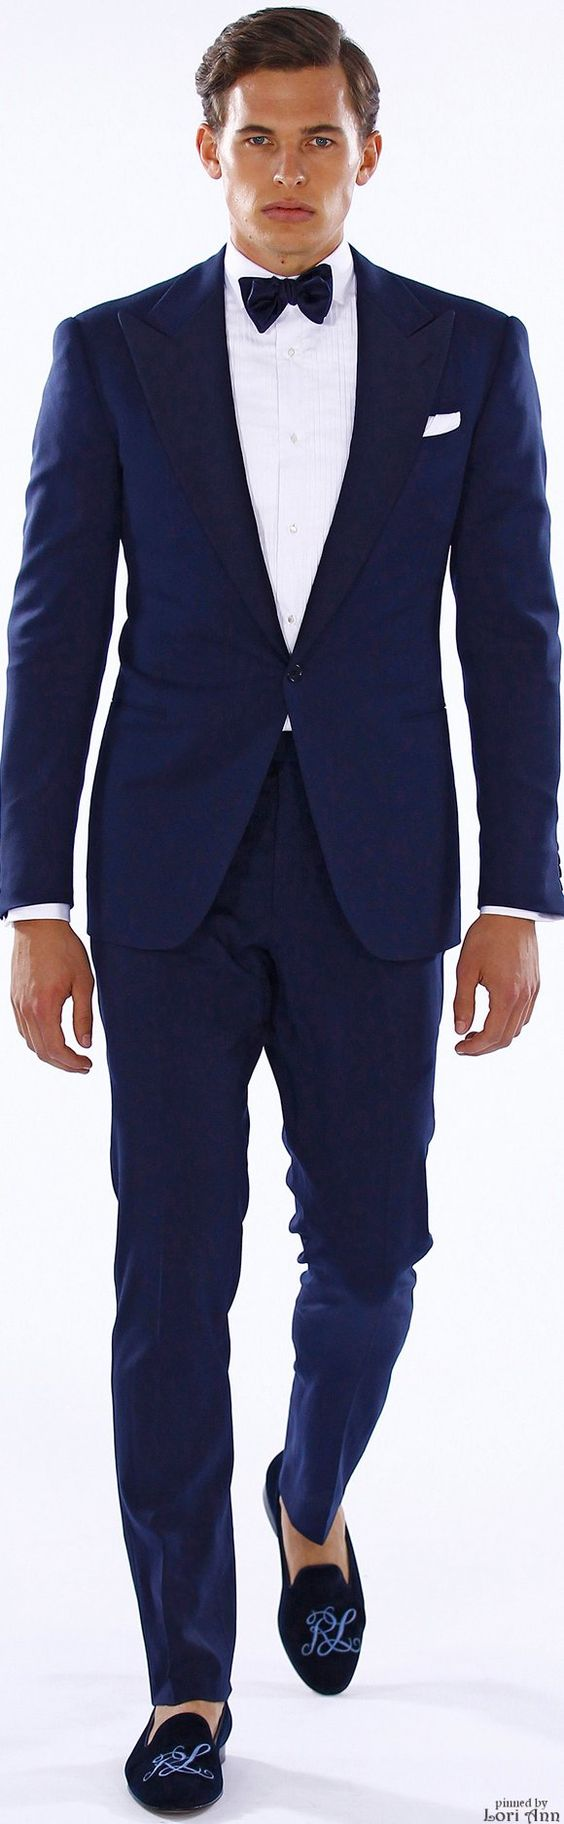 El tuxedo en azul esta totalmente en boga. Ralph Lauren 2016. The Blue tux is officially all the rage.